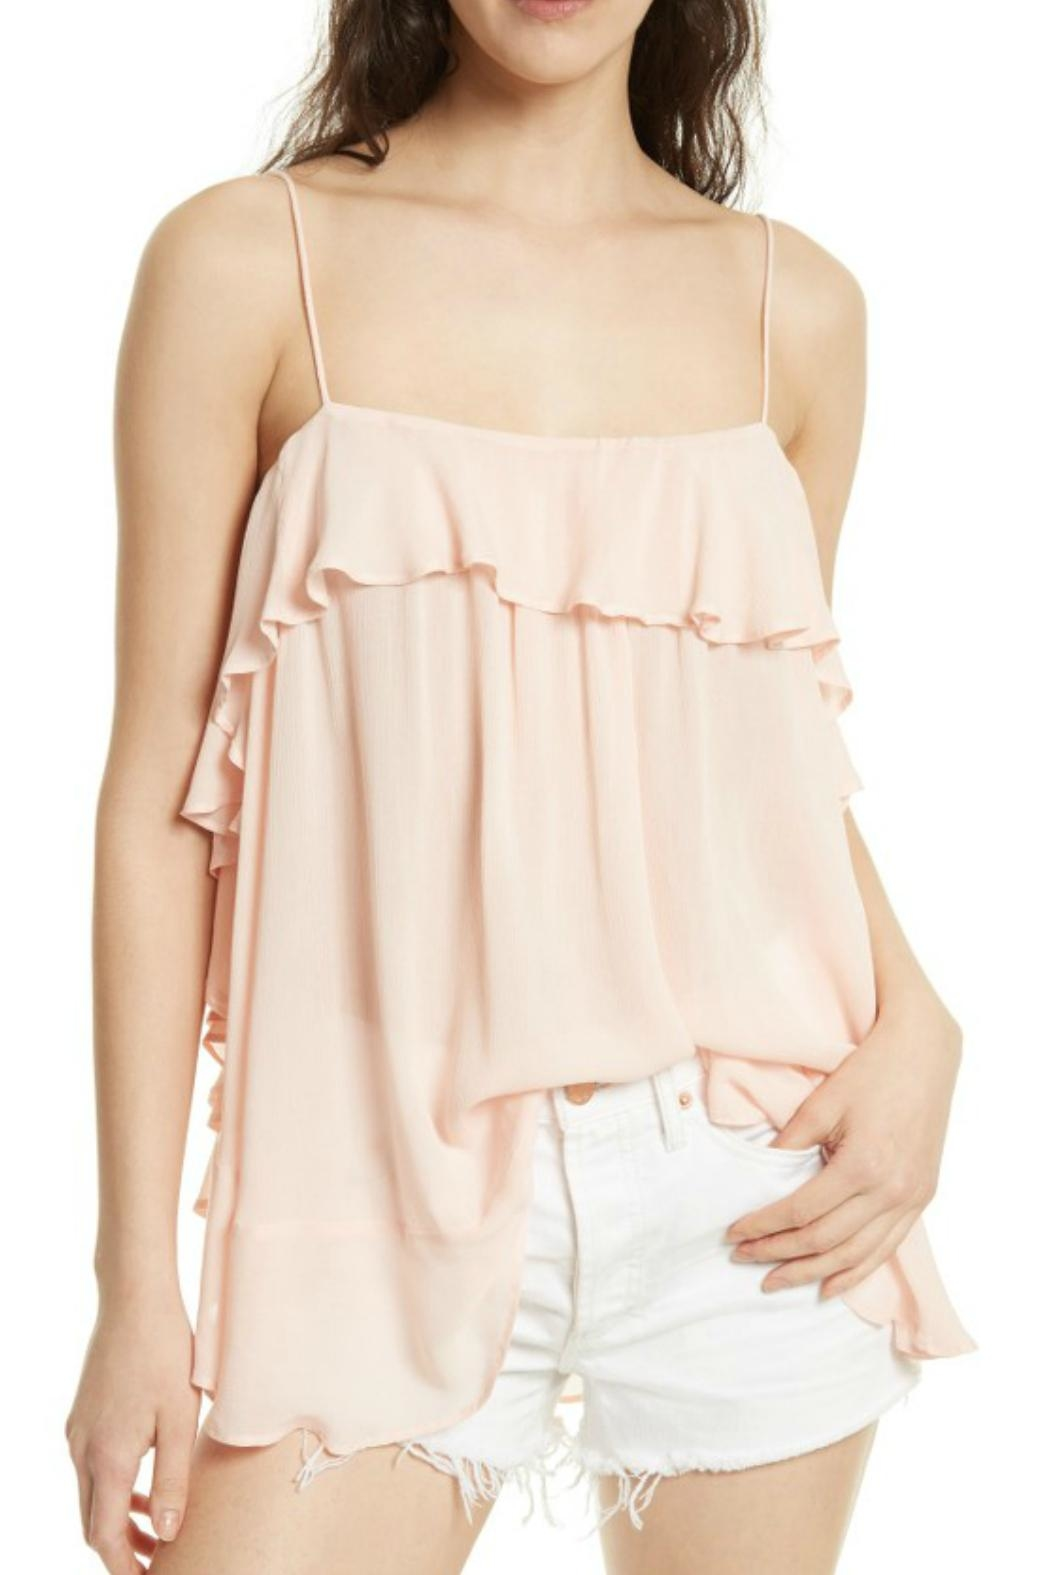 Free People Cascades Pink Cami - Main Image